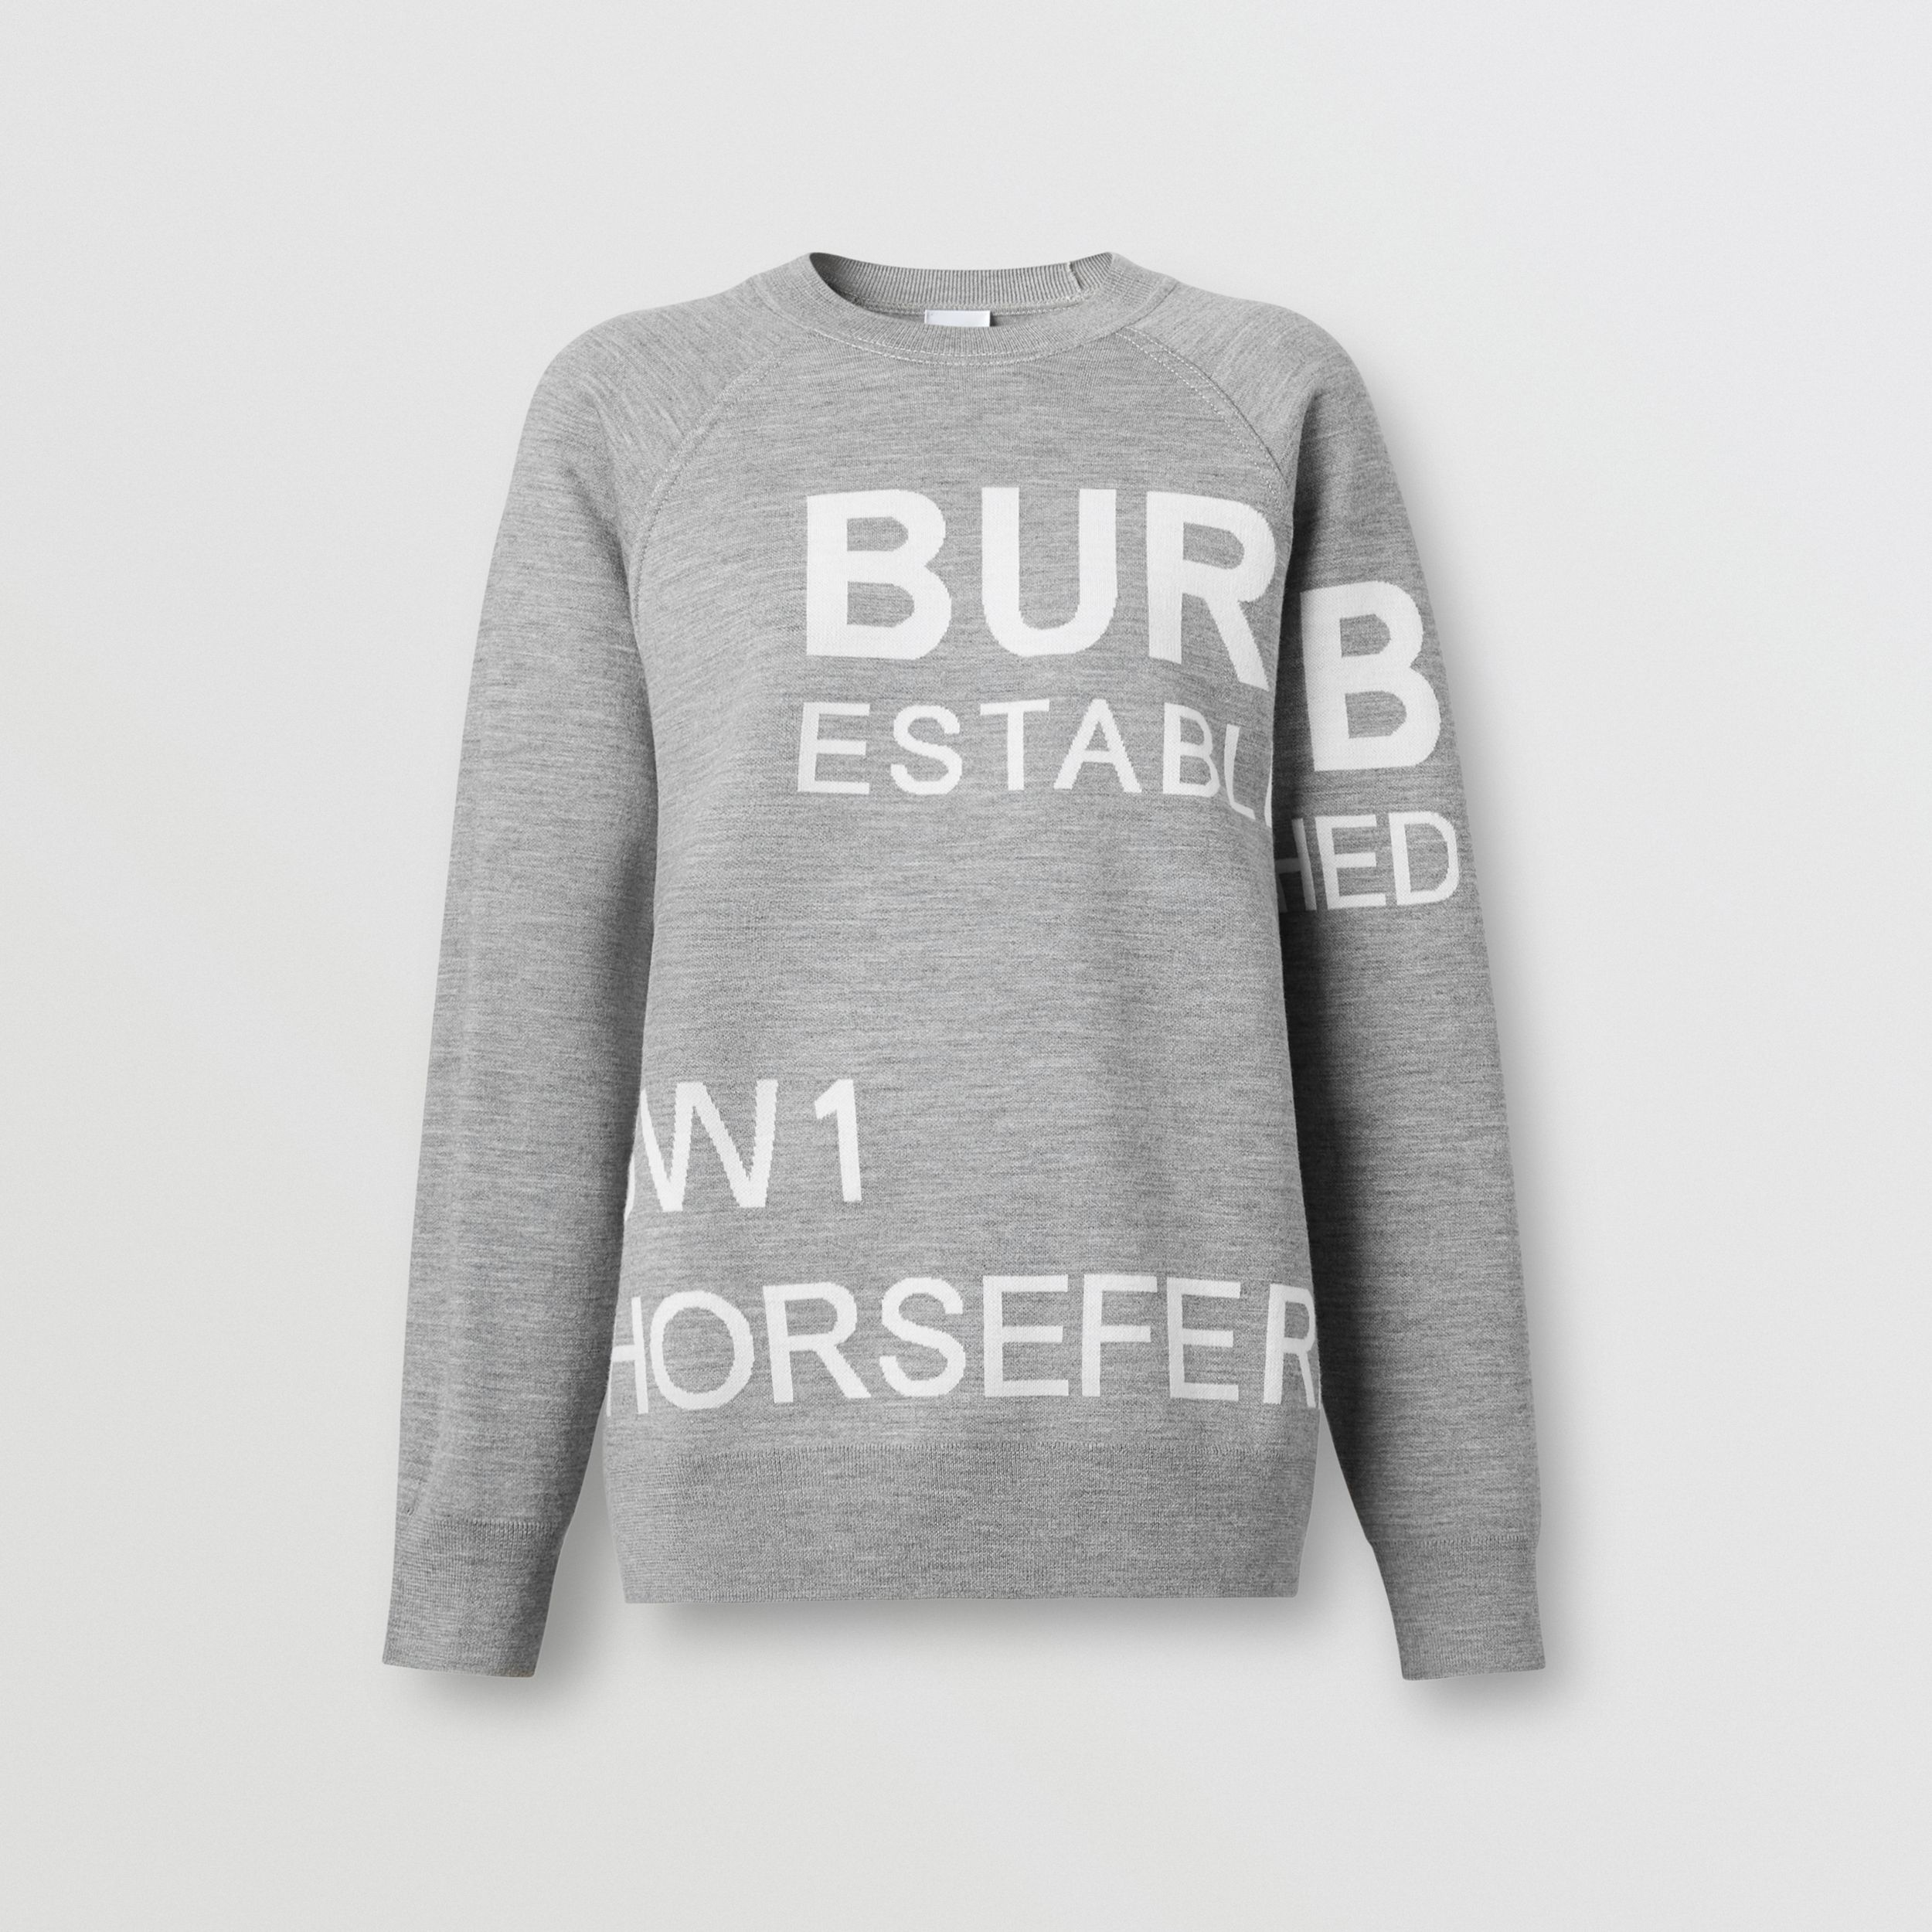 Horseferry Merino Wool Blend Jacquard Sweater in Grey Melange - Women | Burberry - 4